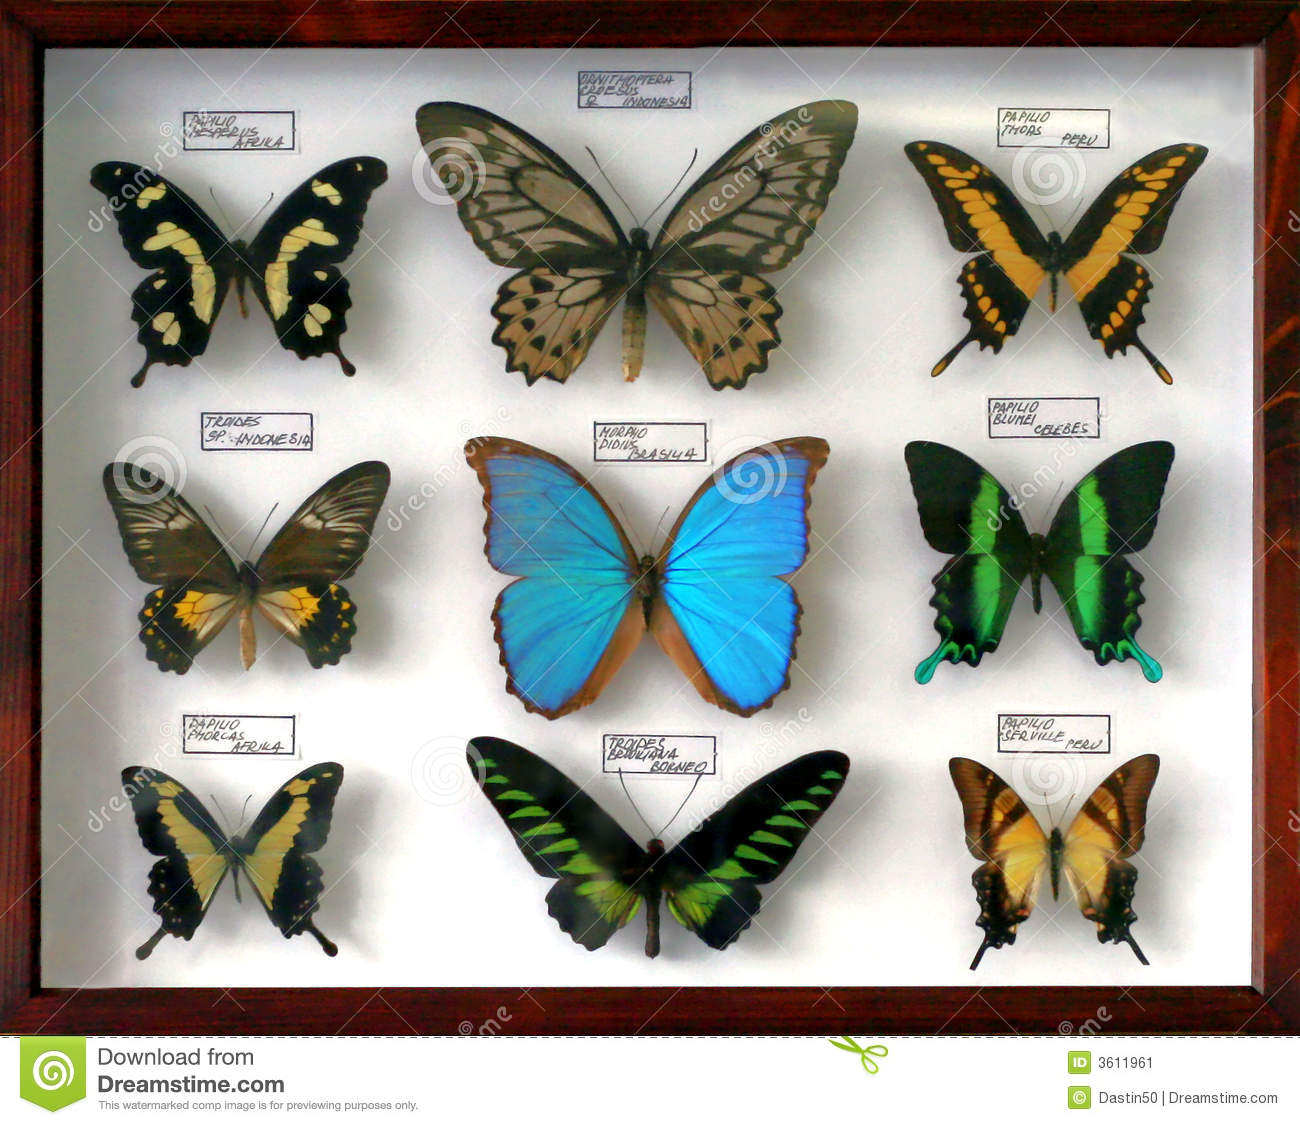 view of a framed and mounted collection of colorful butterflies.